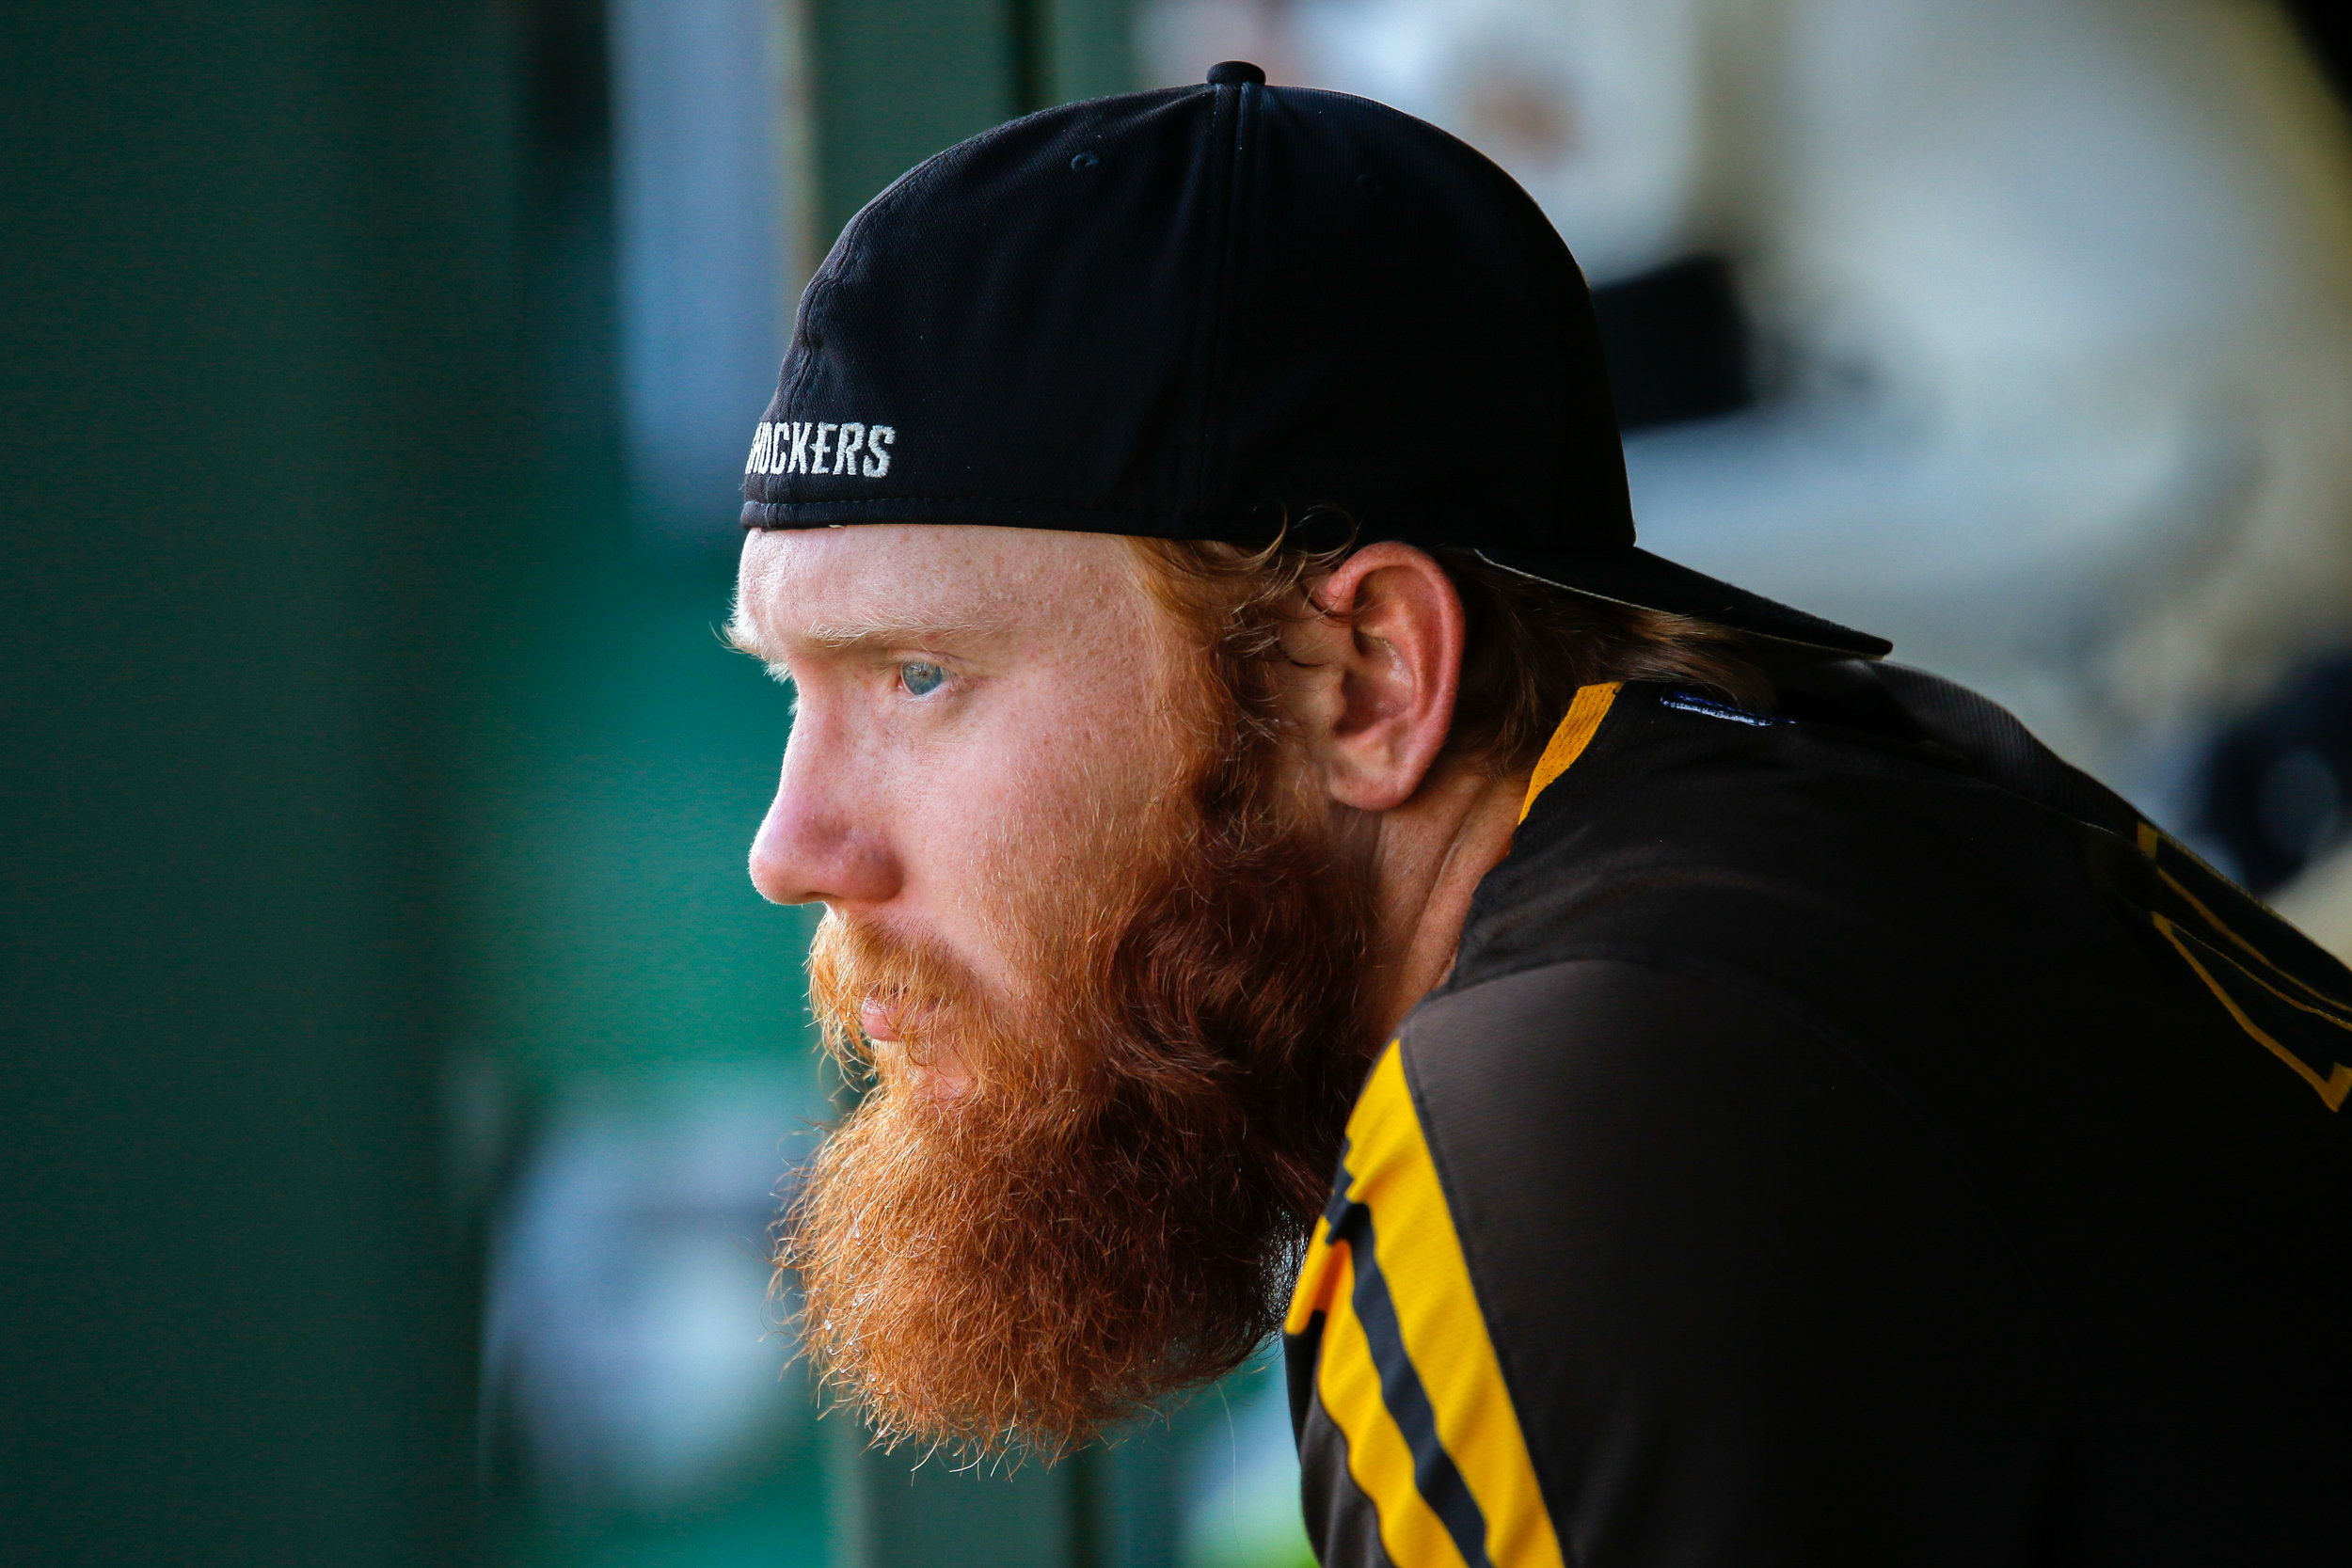 Wichita State's Gunnar Troutwine focuses before their game on May 6, 2018 at Eck Stadium.